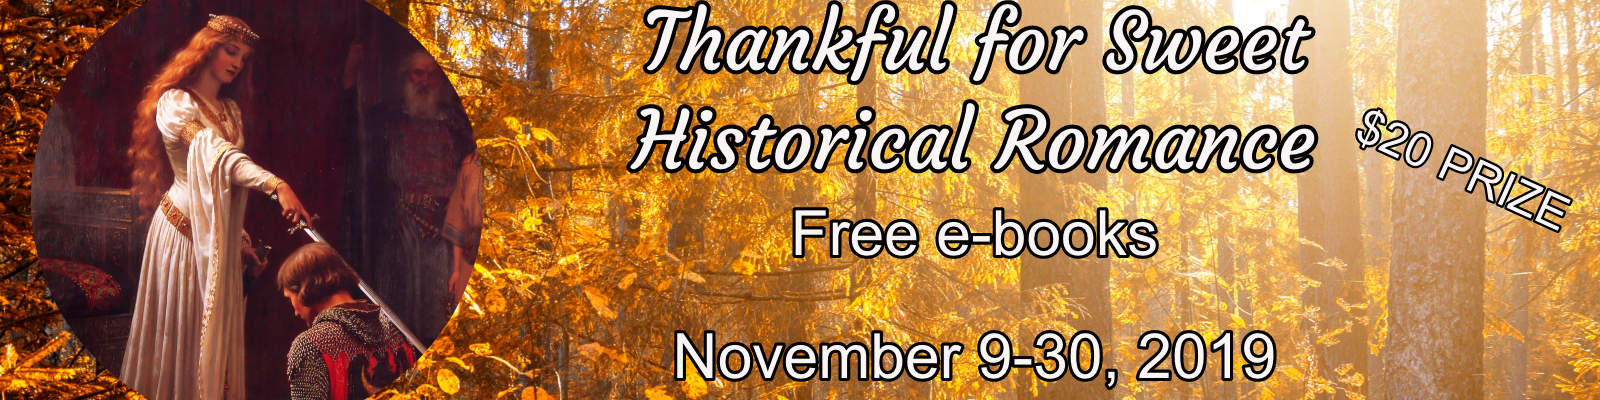 Thankful for Sweet Historical Romance!